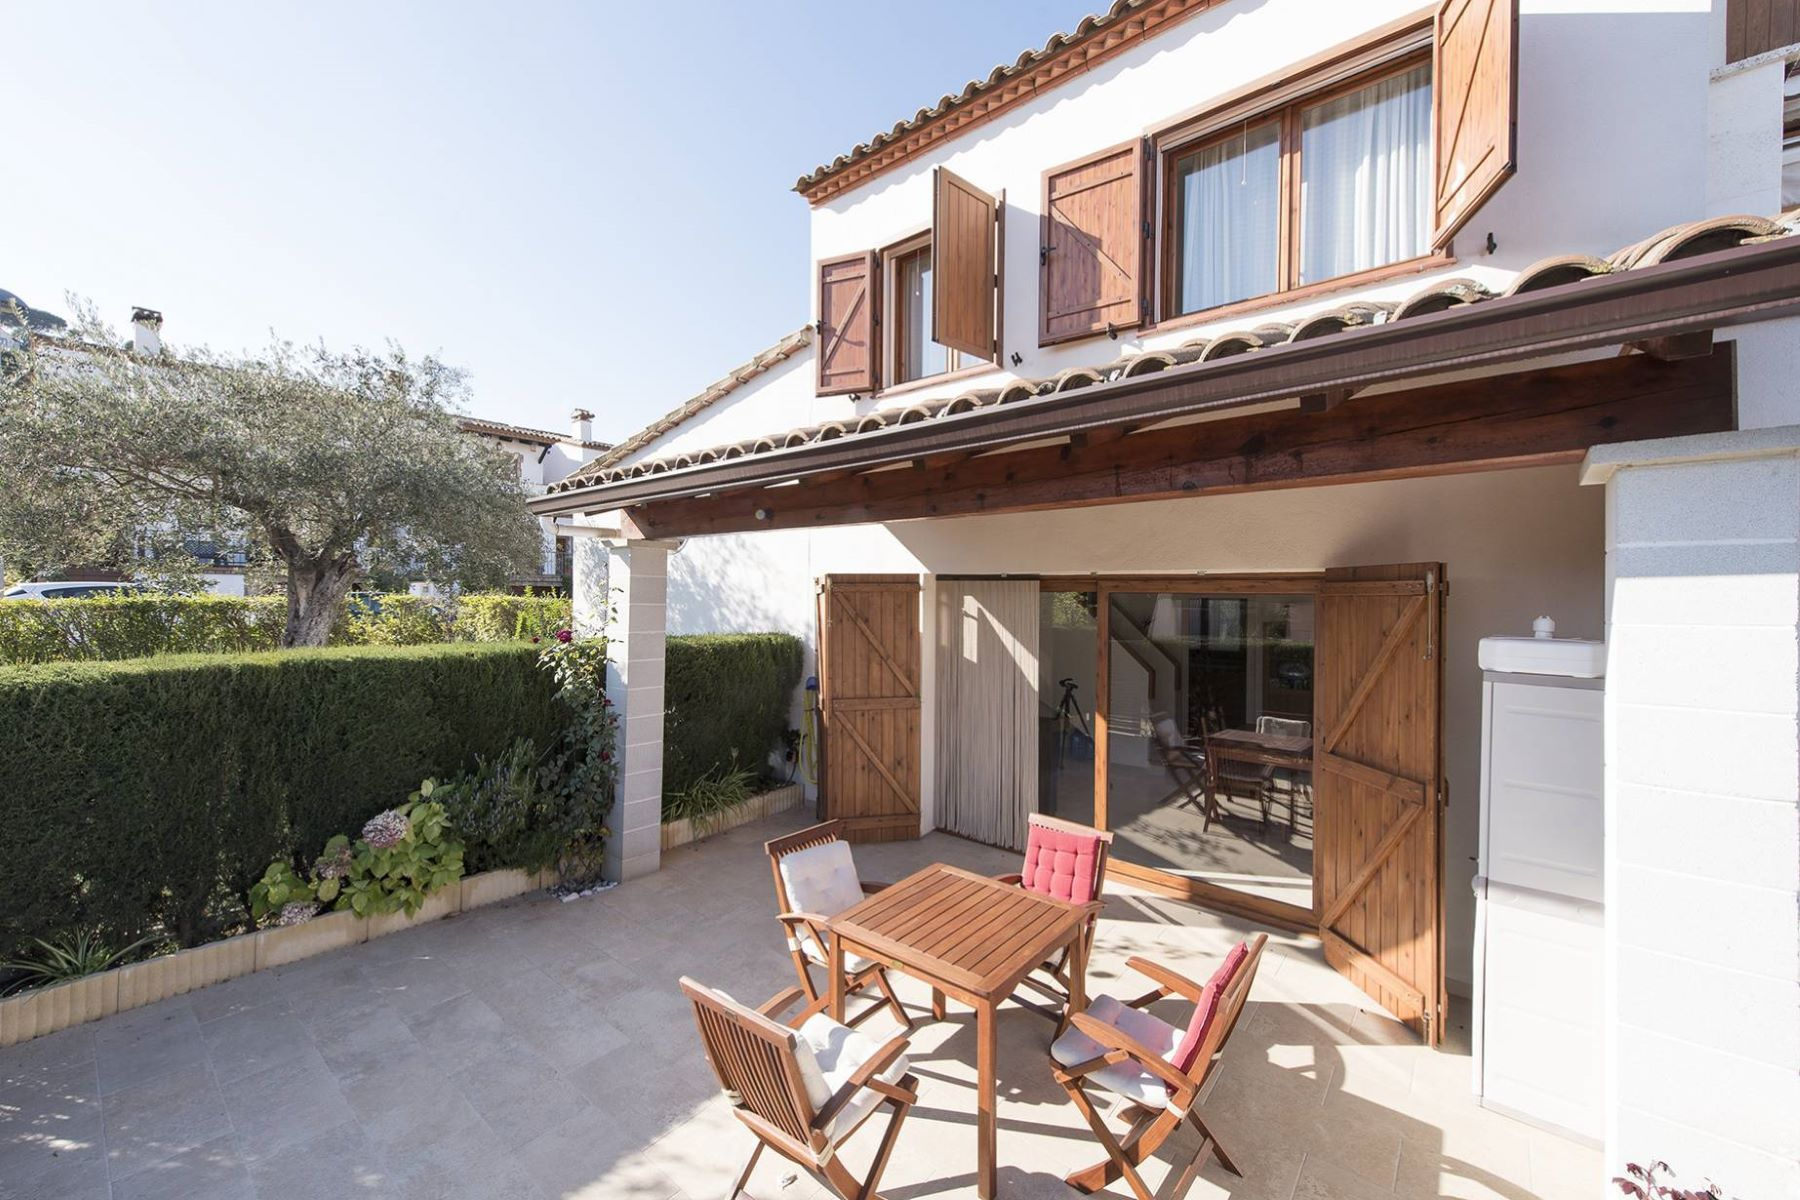 Single Family Home for Sale at Cosy terraced house 500 m from the beach of Torre Valentina Torrevalentina, Barcelona, 17252 Spain